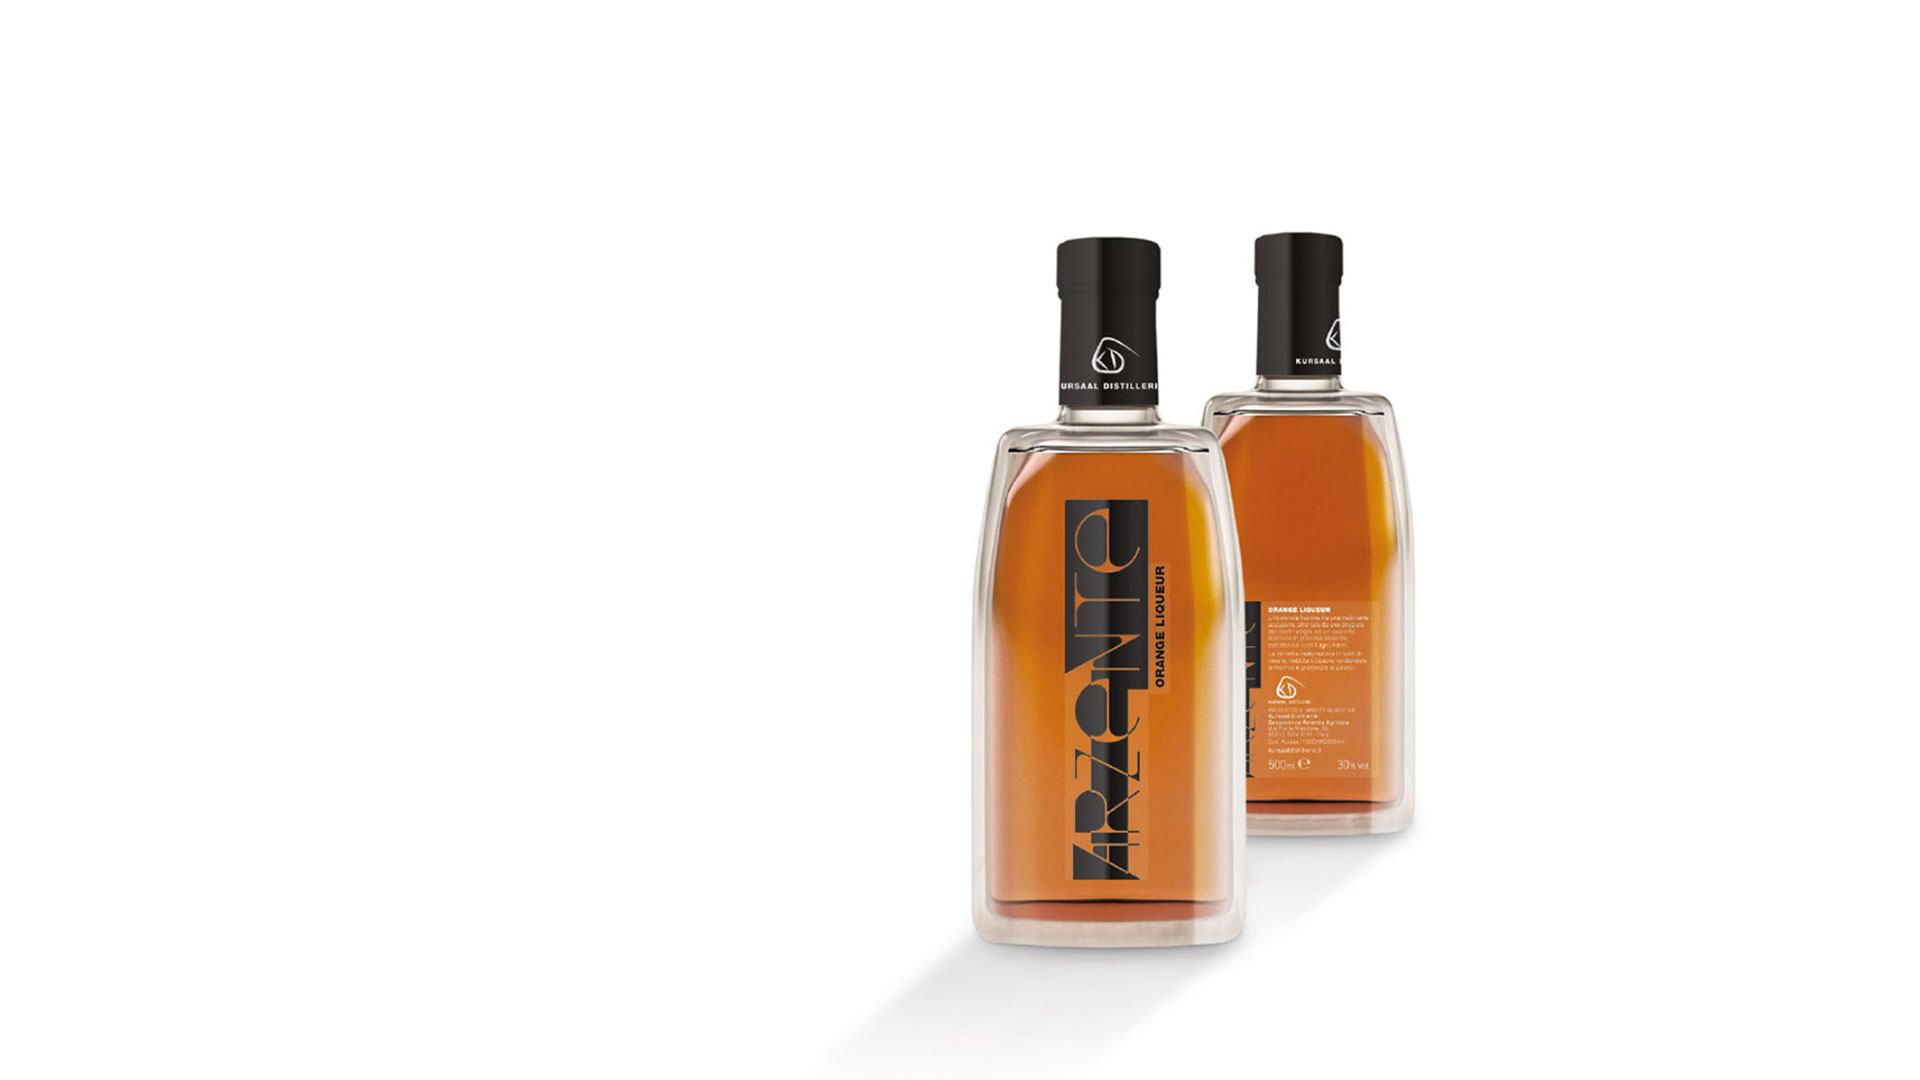 Arzente, Orange Liqueur